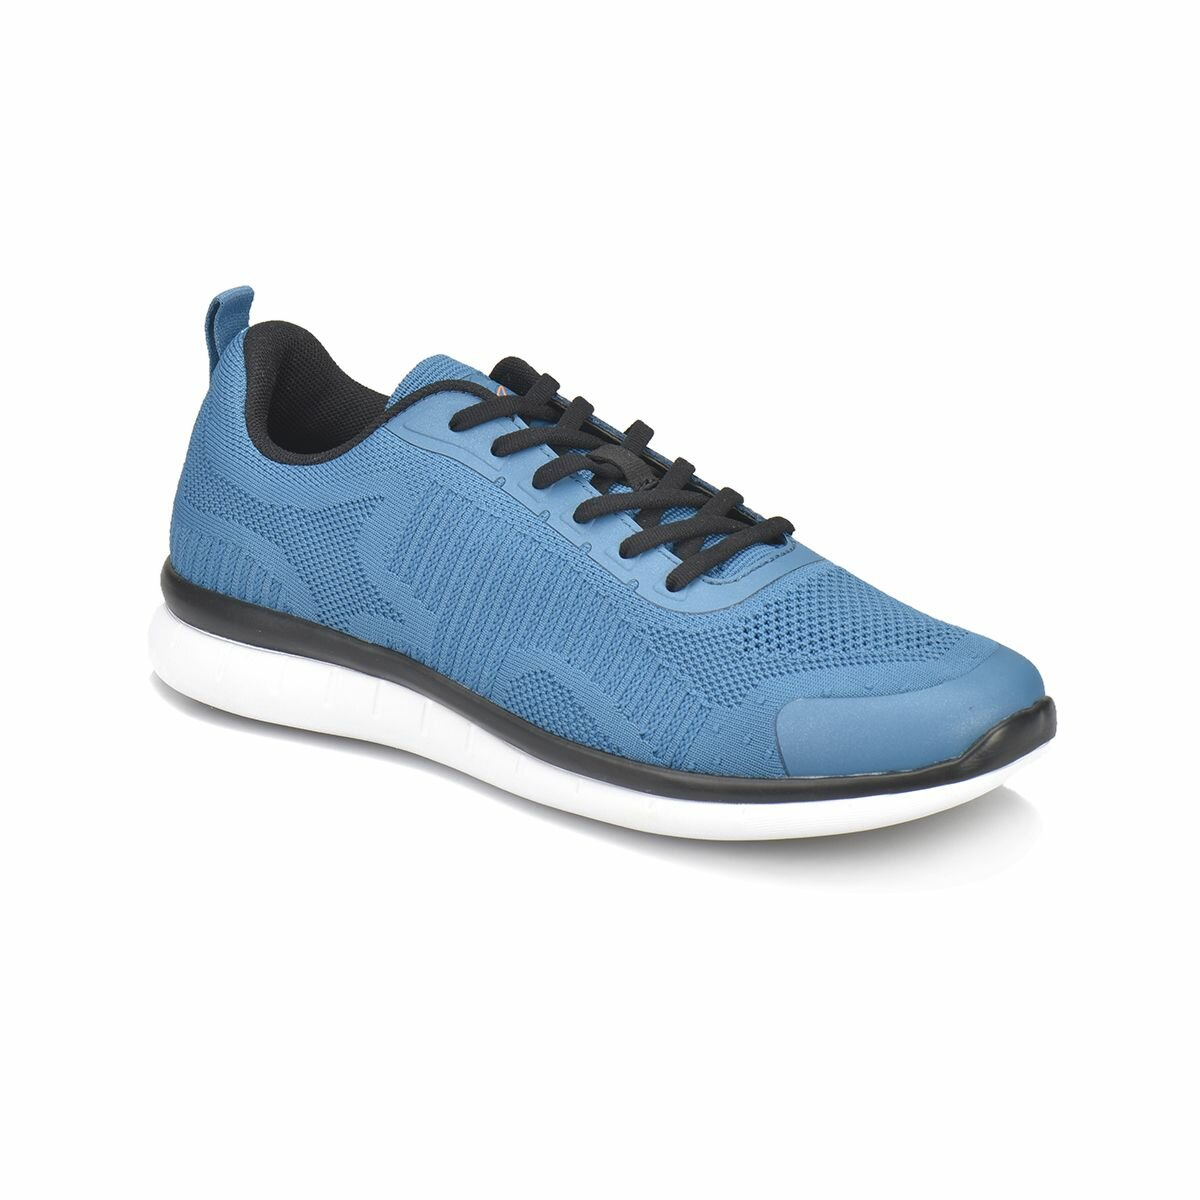 FLO ULTRASOFT Oil Men 'S Comfort Shoes KINETIX